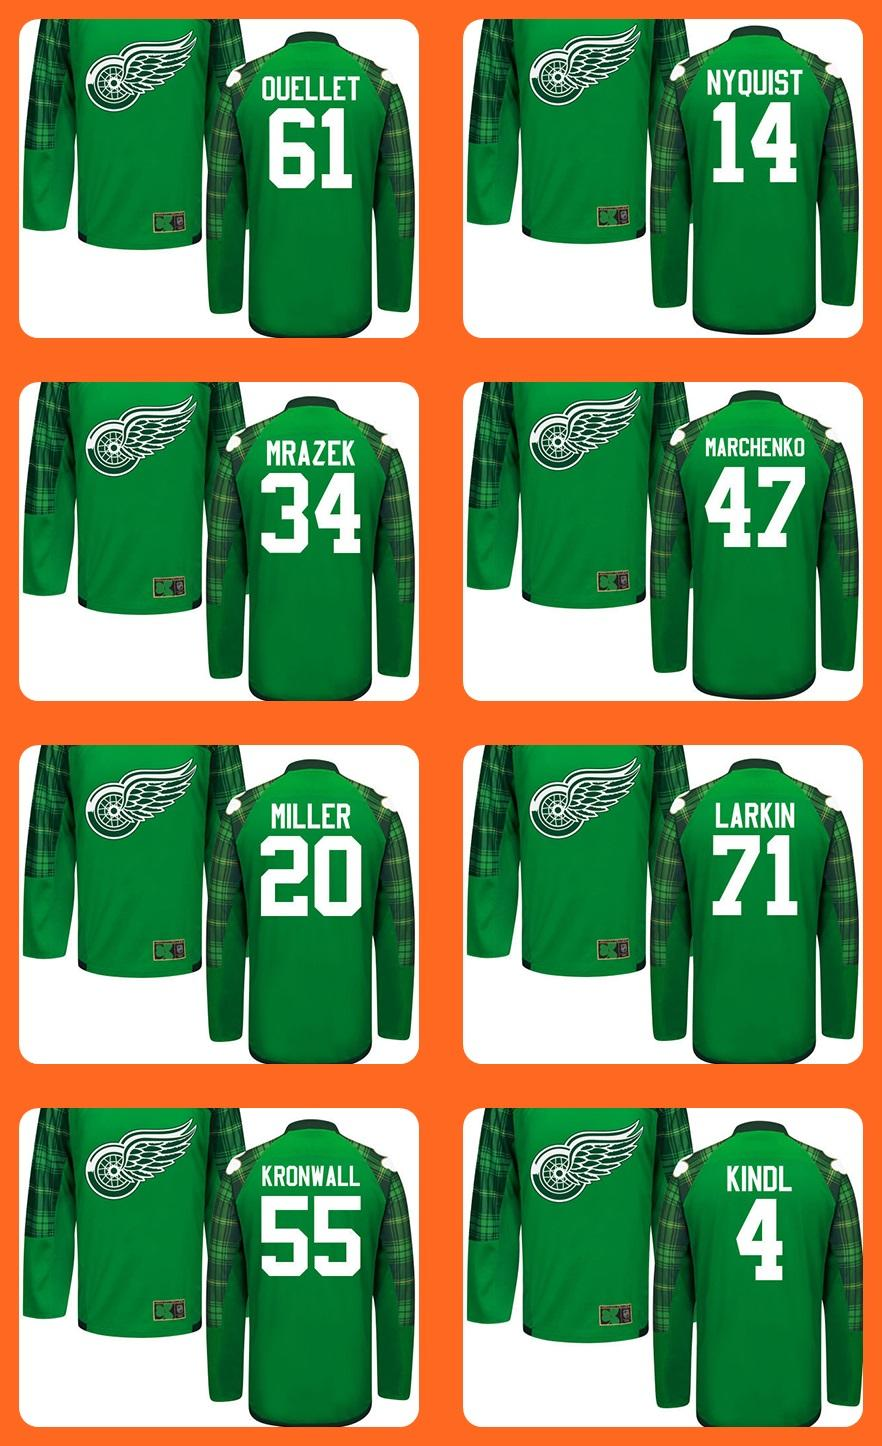 75d3a2a2d23 Mens Green St.Patrick s Day 61 Ouellet 14 Nyquist 34 Mrazek 47 ...